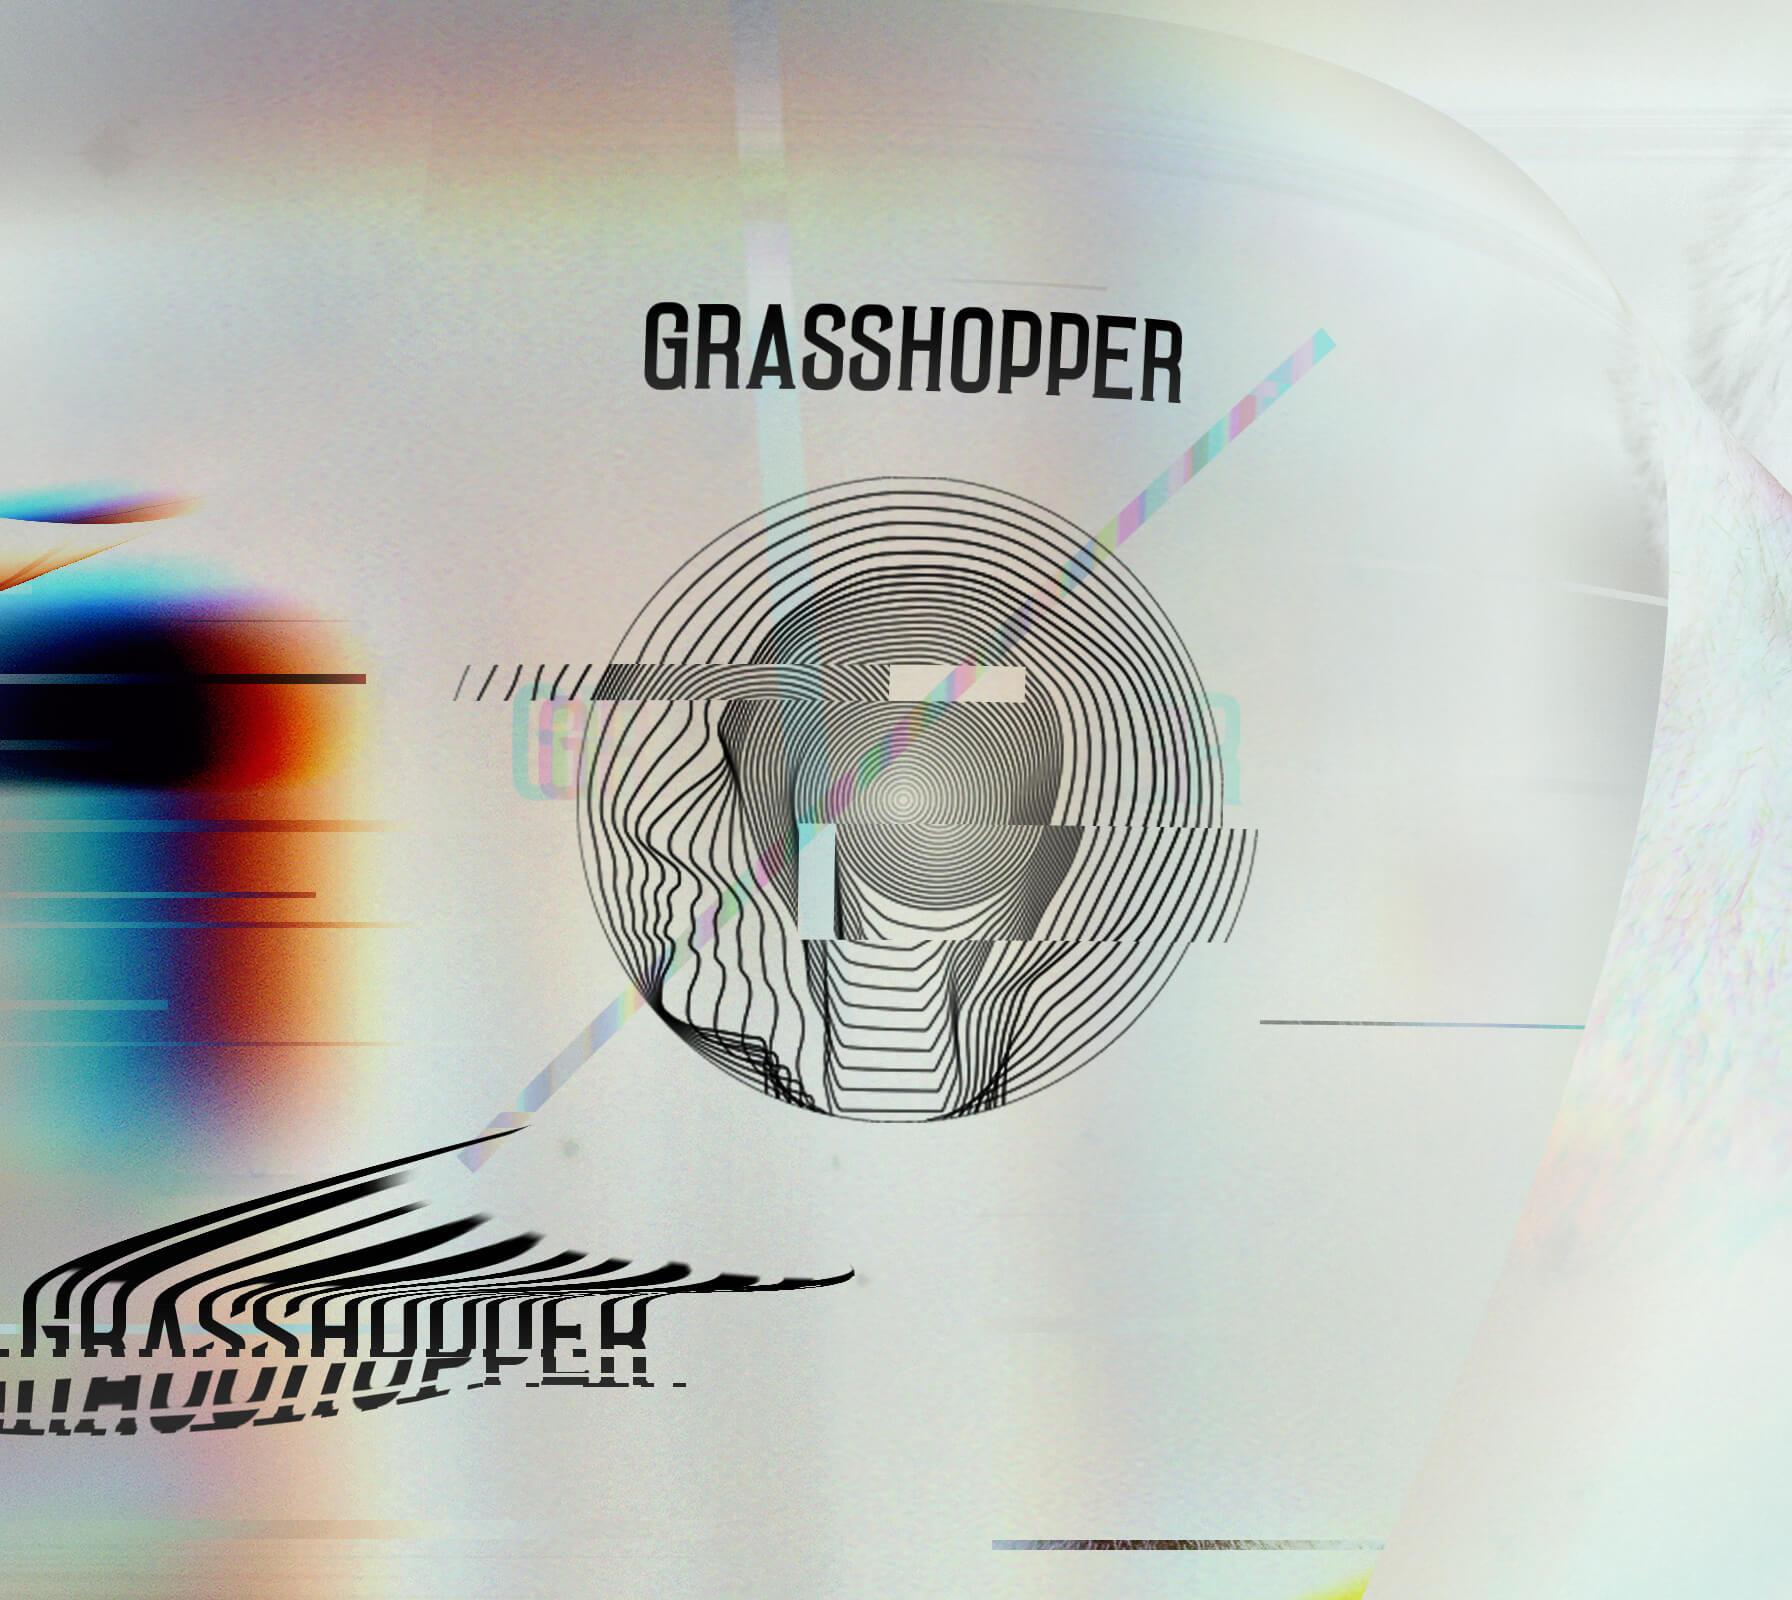 grasshopper-profile